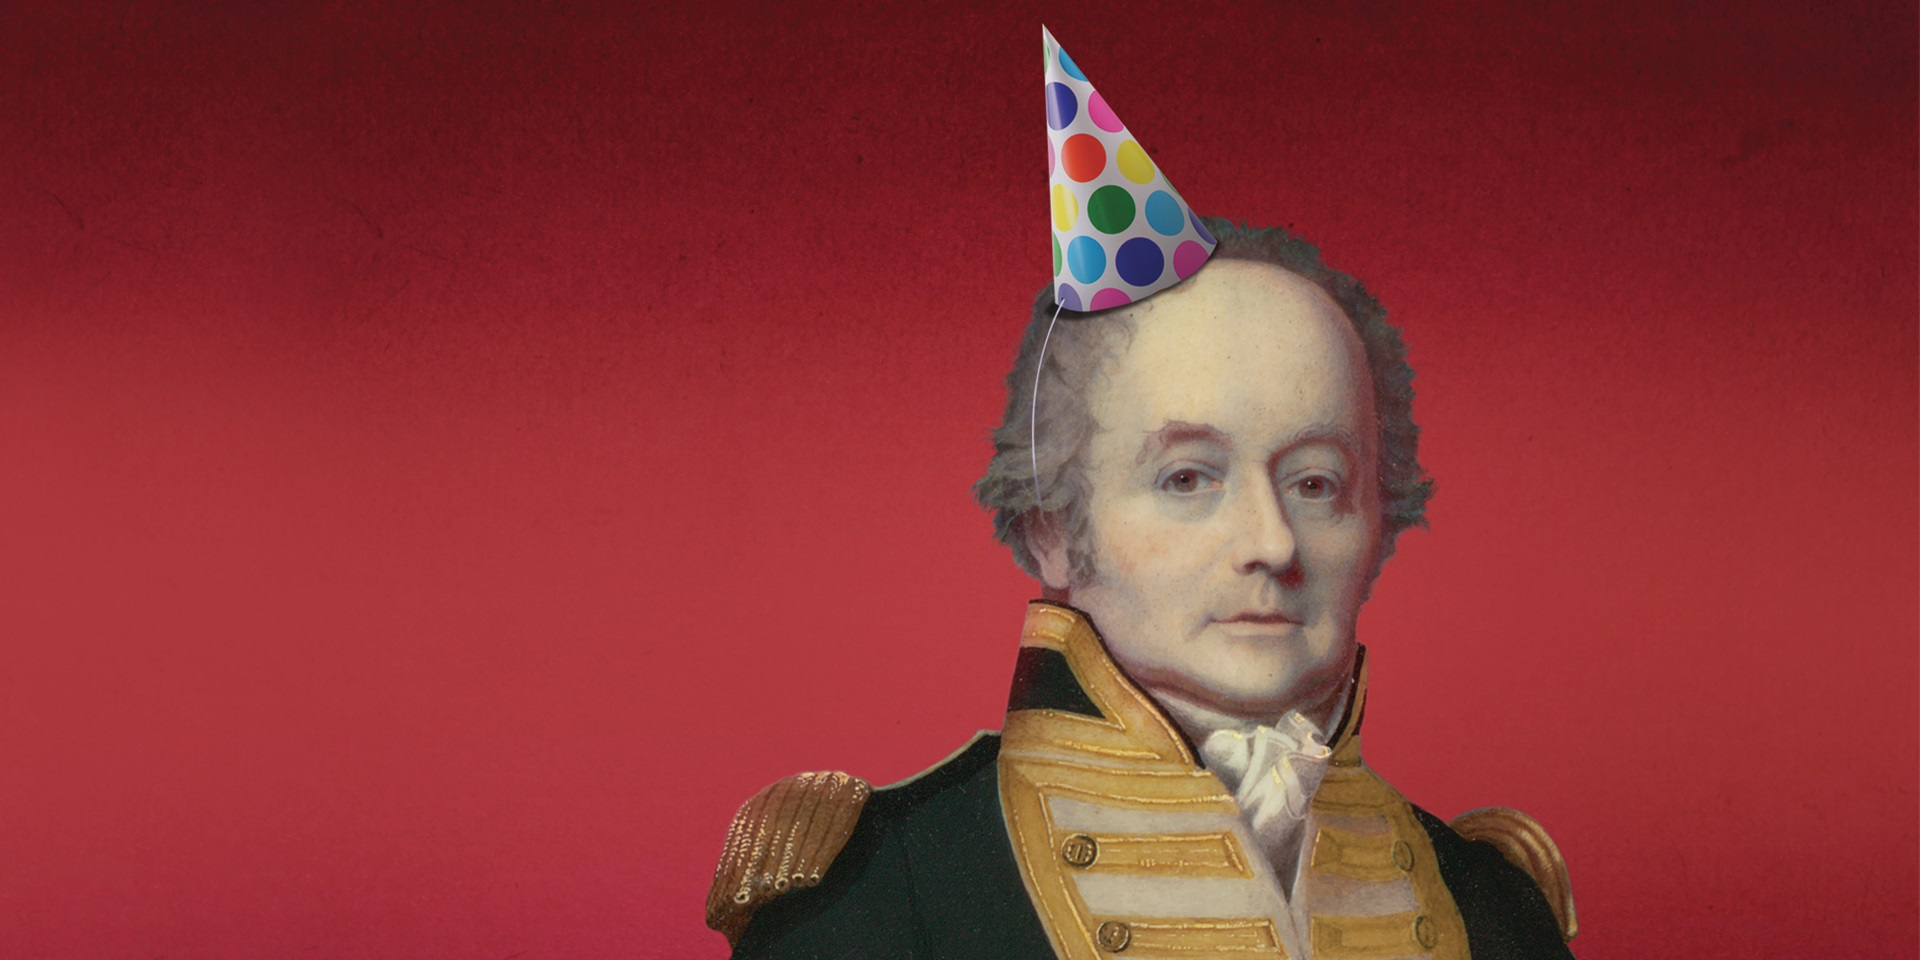 Bligh's birthday